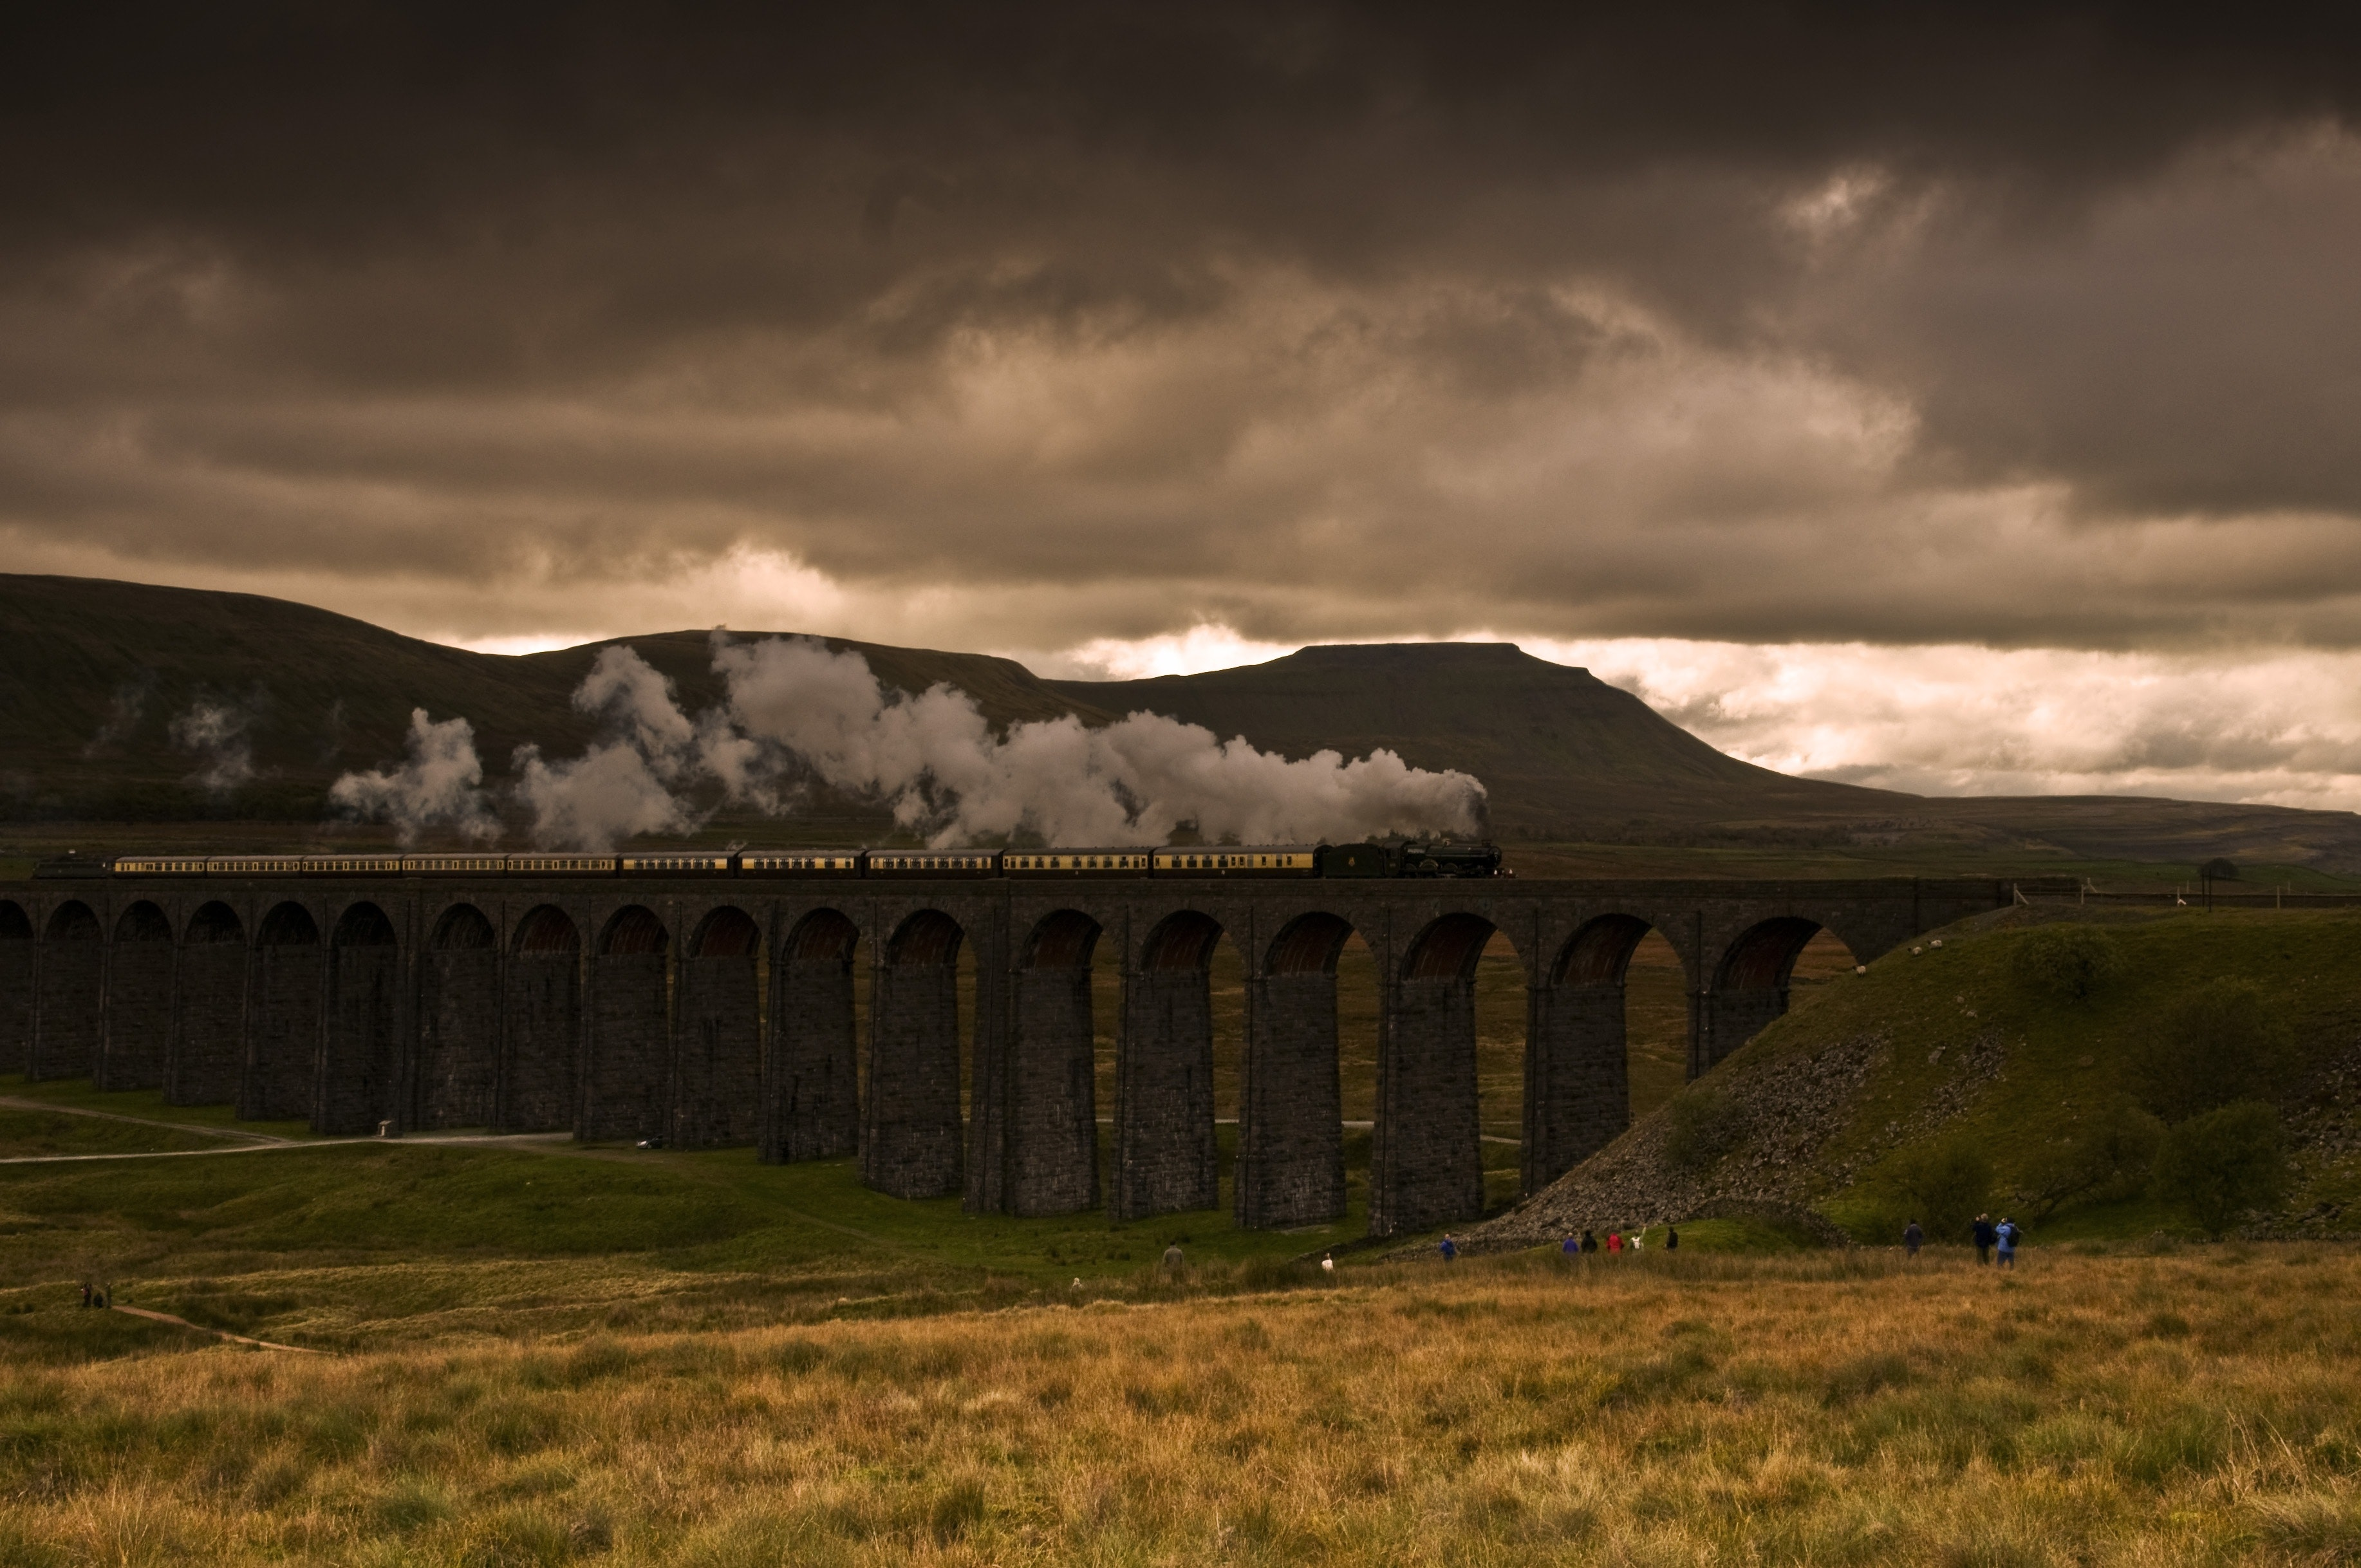 View of Landscape Against Cloudy Sky, Architecture, Nature, Travel, Train, HQ Photo